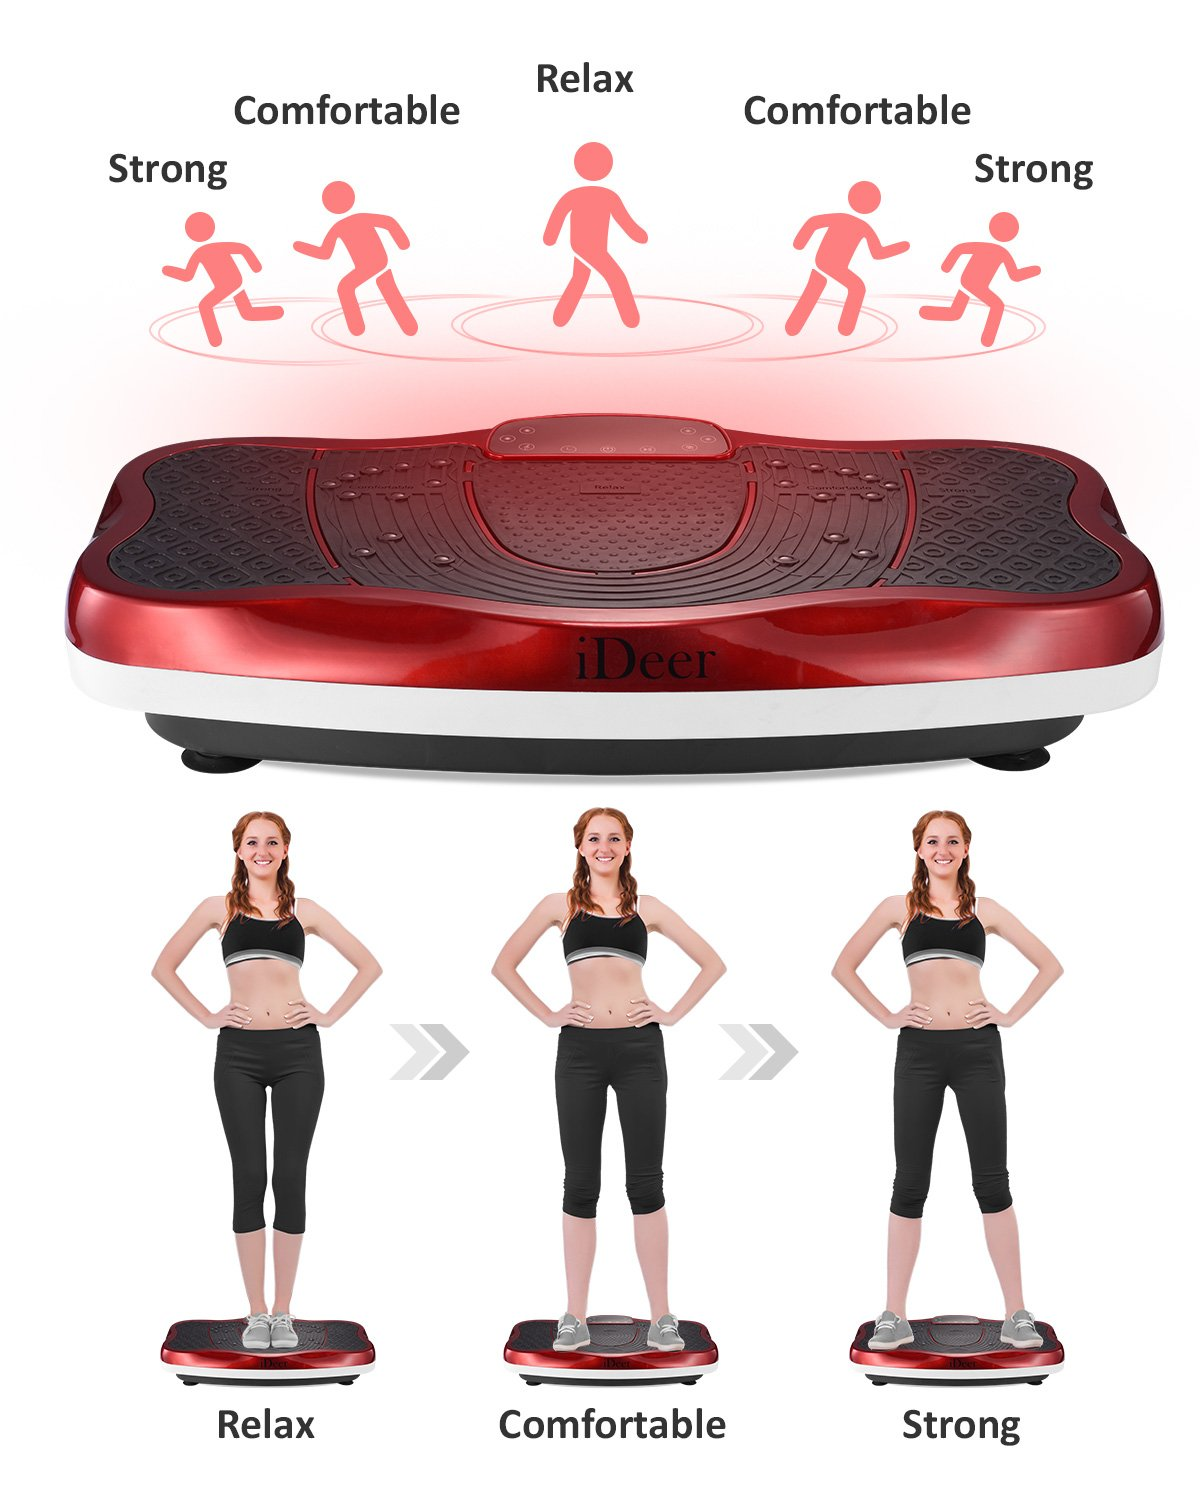 iDeer Vibration Platform Fitness Vibration Plates,Whole Body Vibration Exercise Machine w/Remote Control &Bands,Anti-Slip Fit Massage Workout Vibration Trainer Max User Weight 330lbs (Red09006) by IDEER LIFE (Image #2)